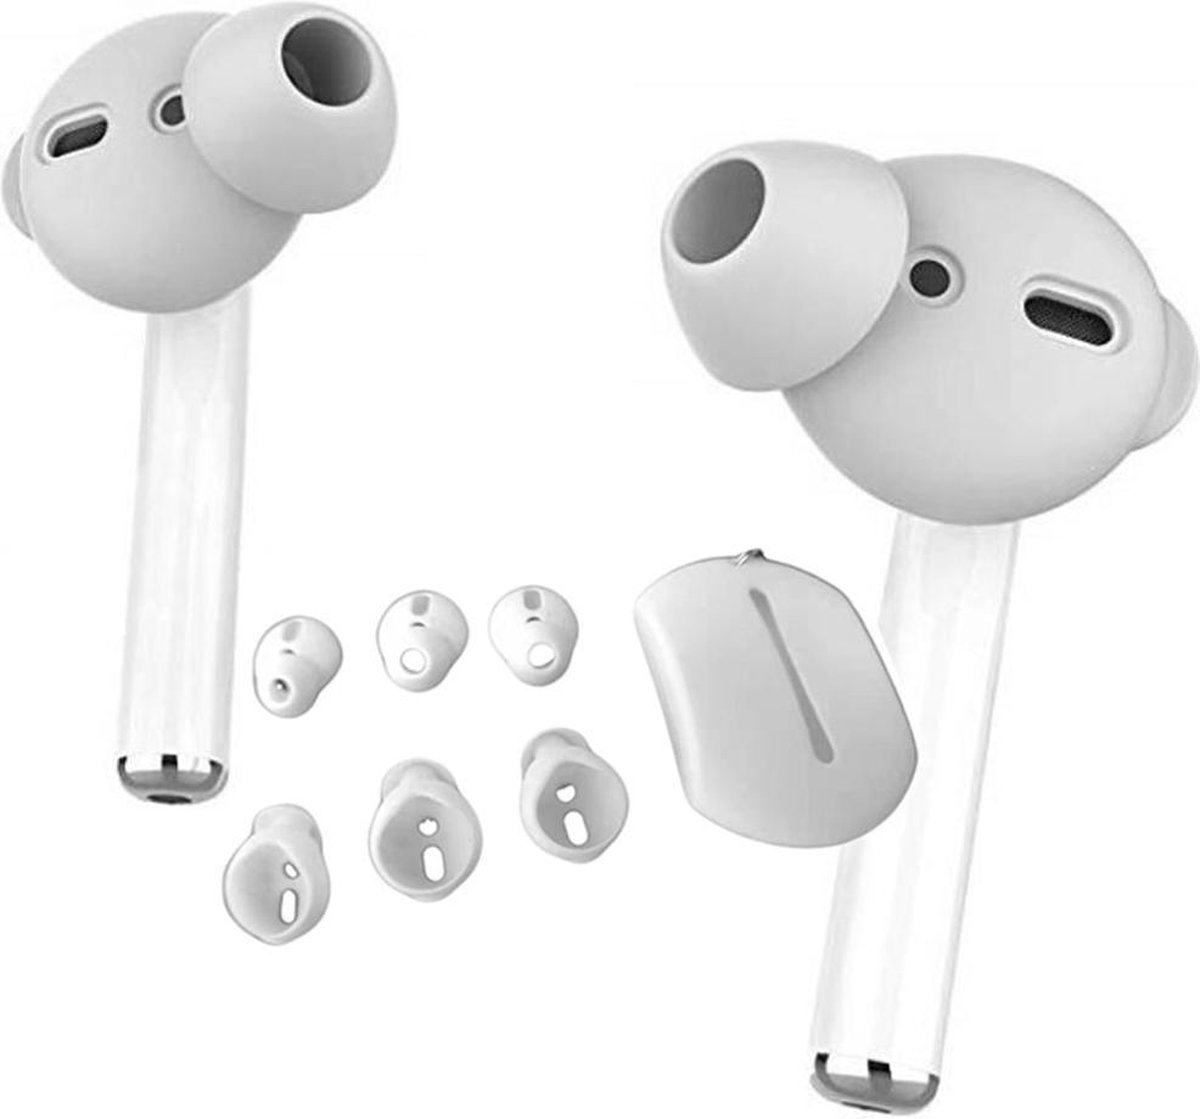 3 paar Silicone Airpods hoesjes - Universele Maten